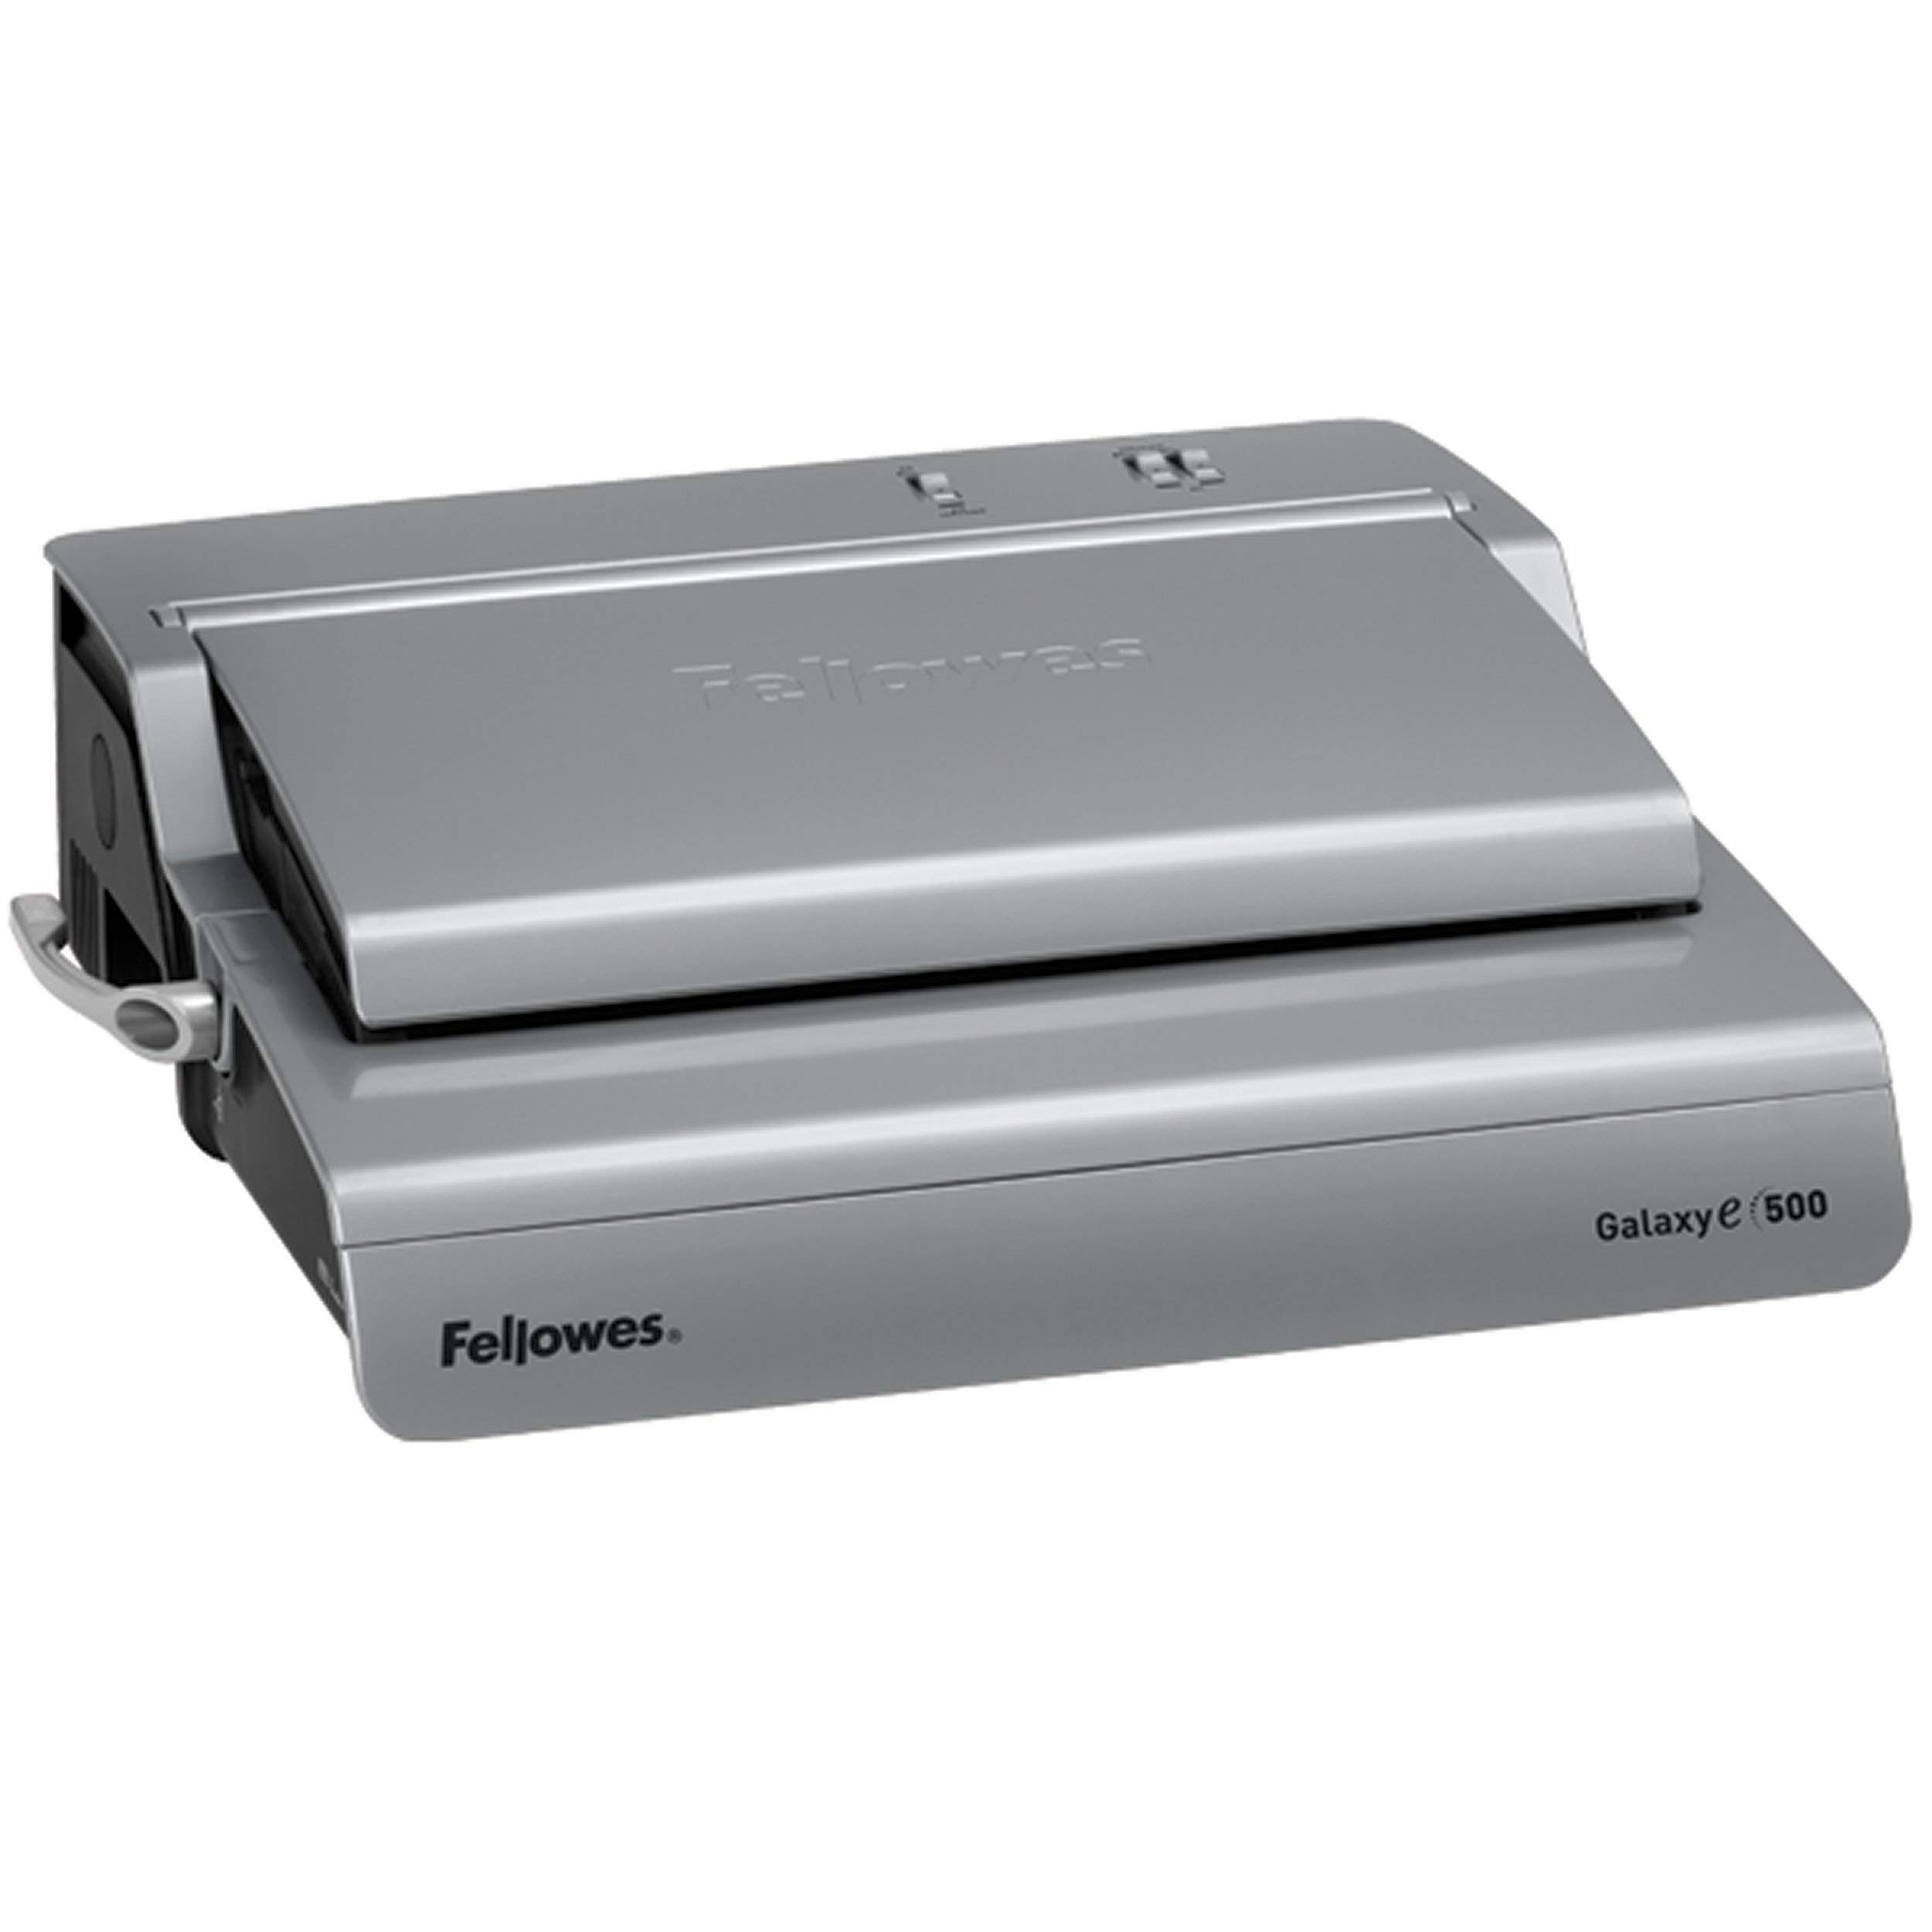 Fellowes 5218301 Galaxy 500 Electric Comb Binding System, 500 Sheets, 19 5/8x17 3/4x6 1/2, Gray (Renewed) by Fellowes (Image #4)